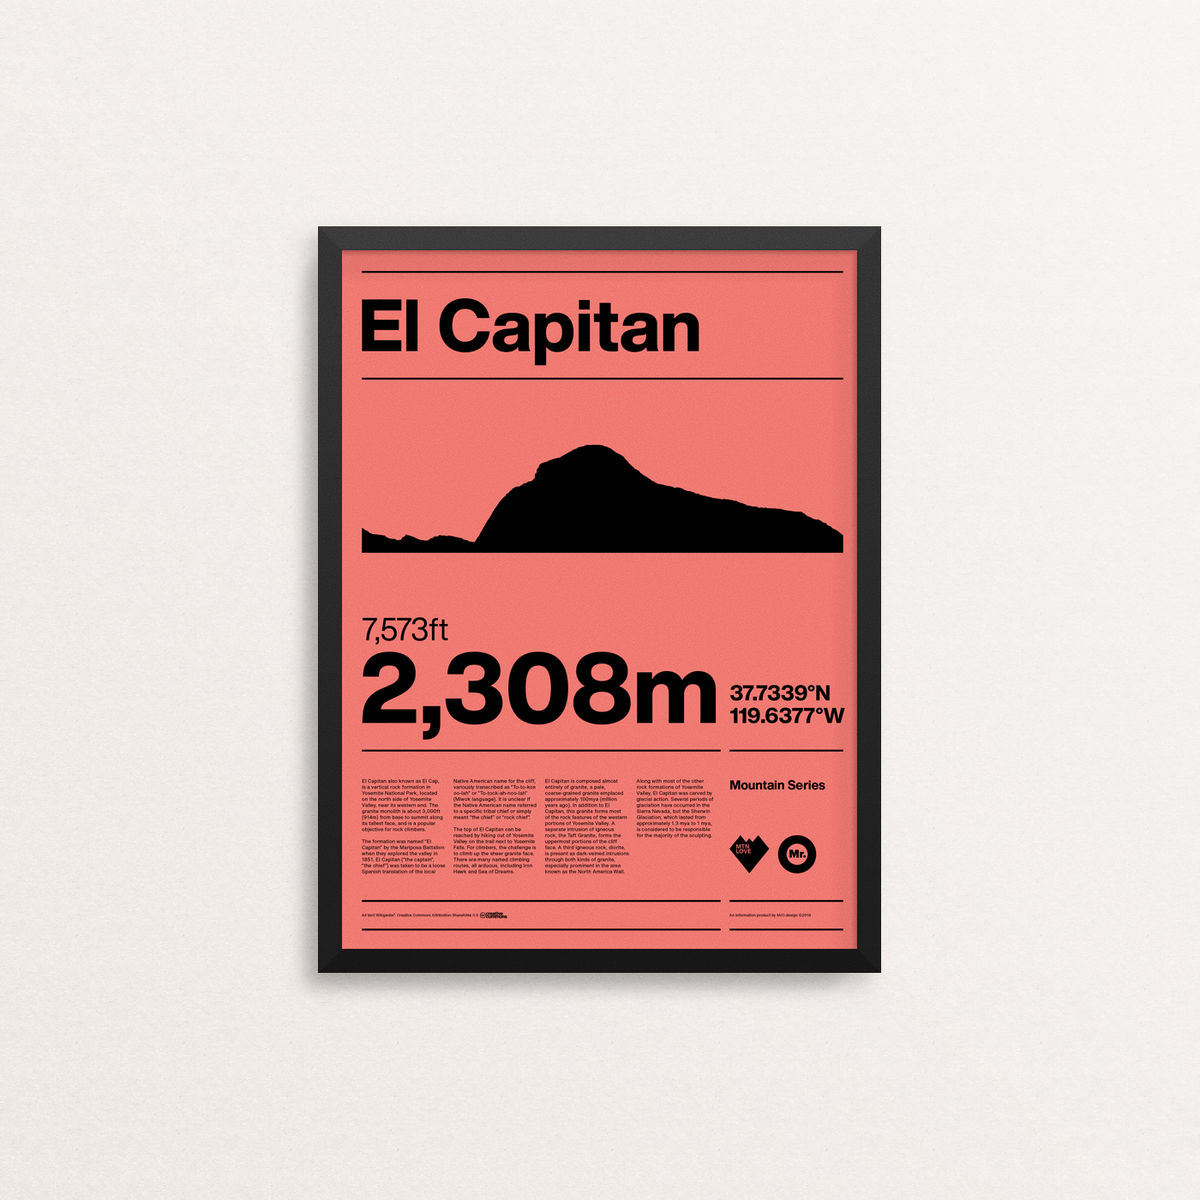 MTN Love - El Capitan - product image